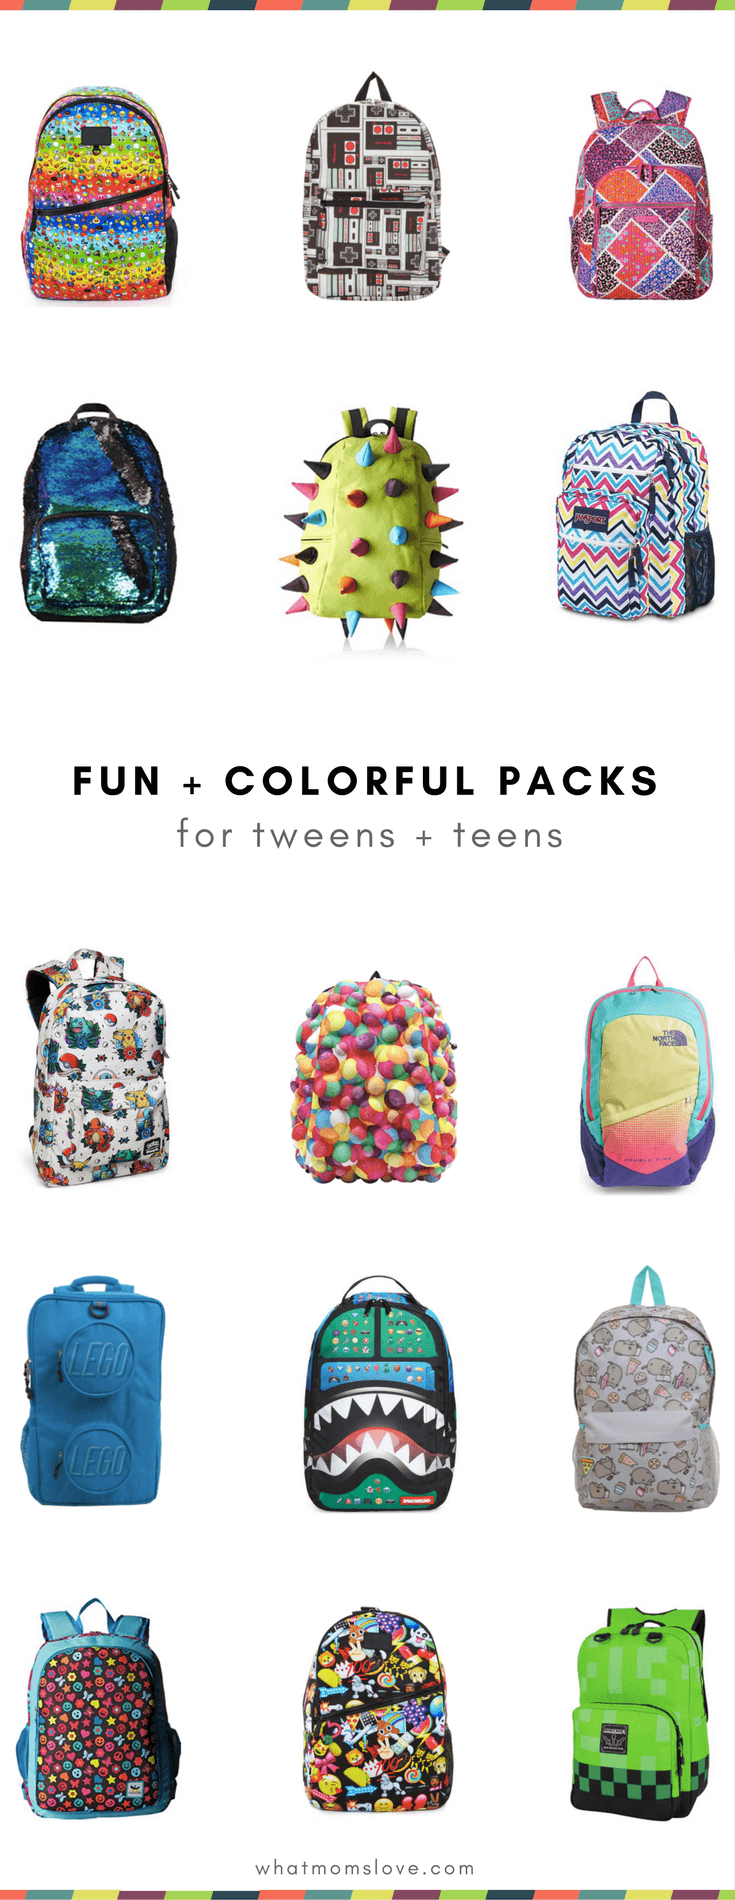 1a2302127c Best Backpacks for Tweens and Teens for Back to School - Colorful Fun Emoji